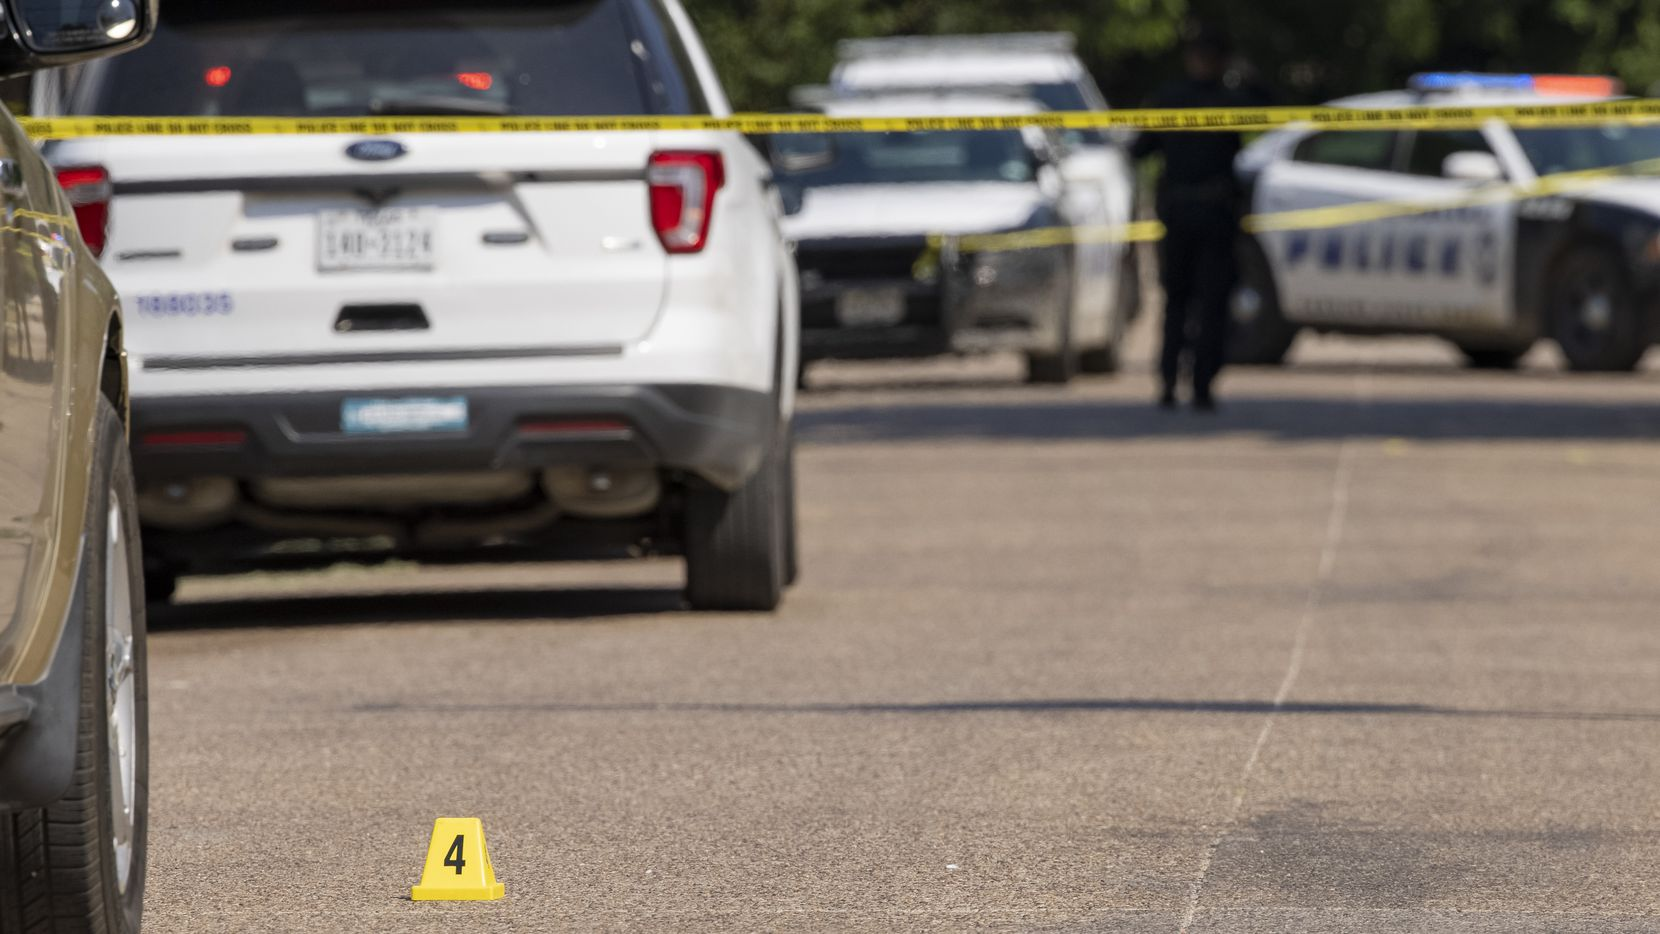 The stabbing occurred in the 2900 block of Frazier Street in South Dallas, police said.